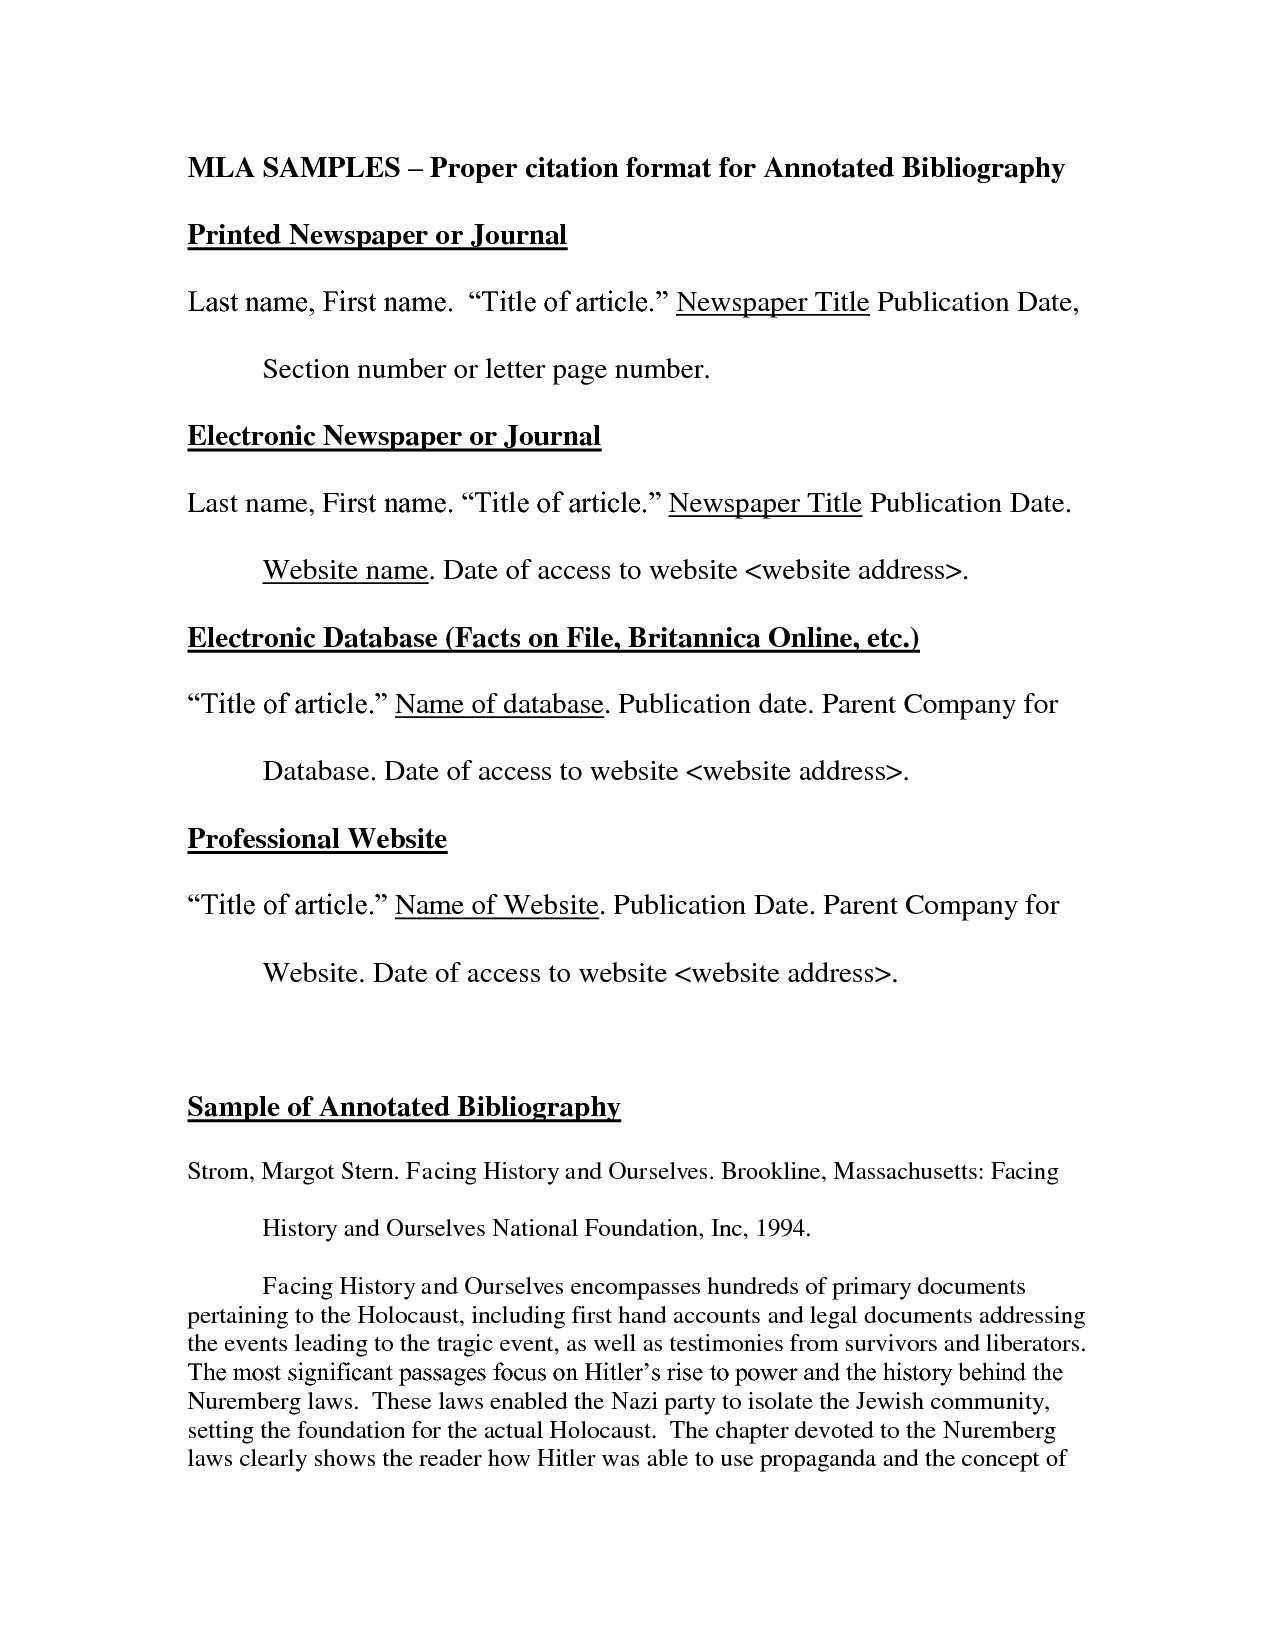 018 Bunch Ideas Of Images Mla Format Reference Page Template Sample Essay With Citations Scarlet Letter Inspirationa Works Cited Best Citin Proper Example Essays On Literature Full